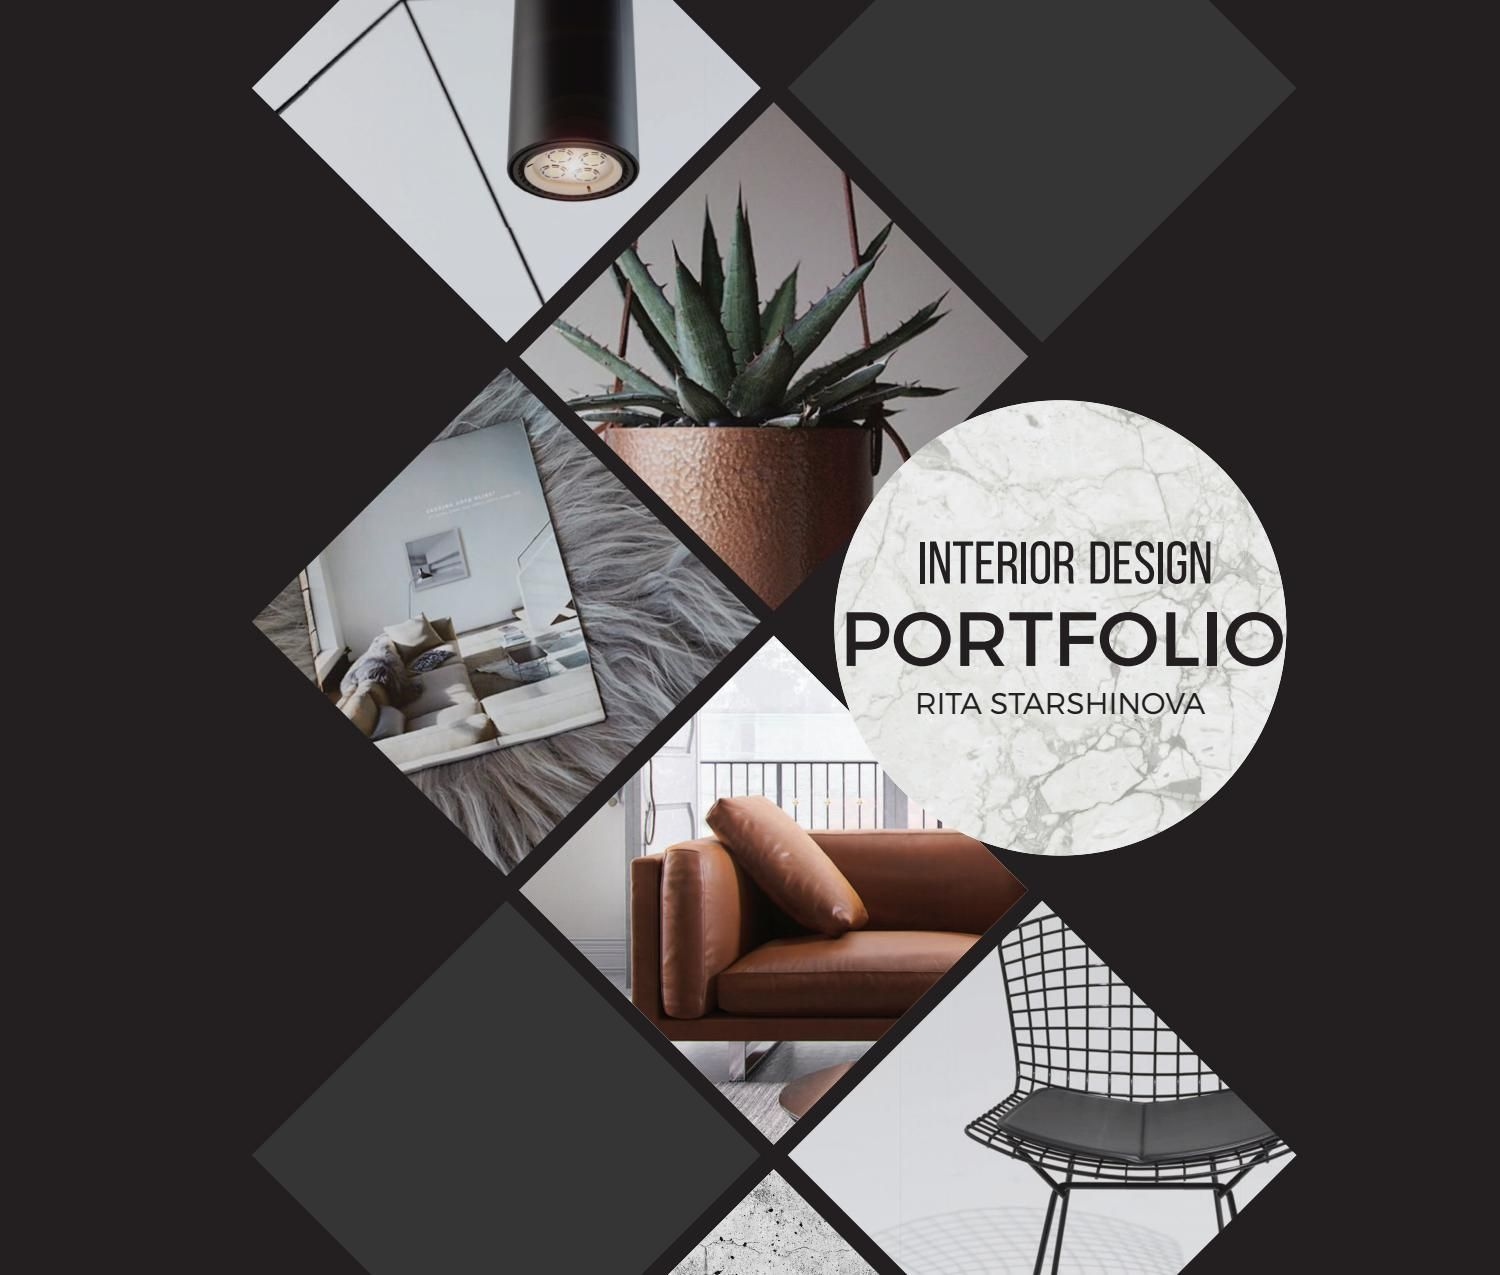 Rita starshinova portfolio 2016 id inscape pinterest for E design interior design